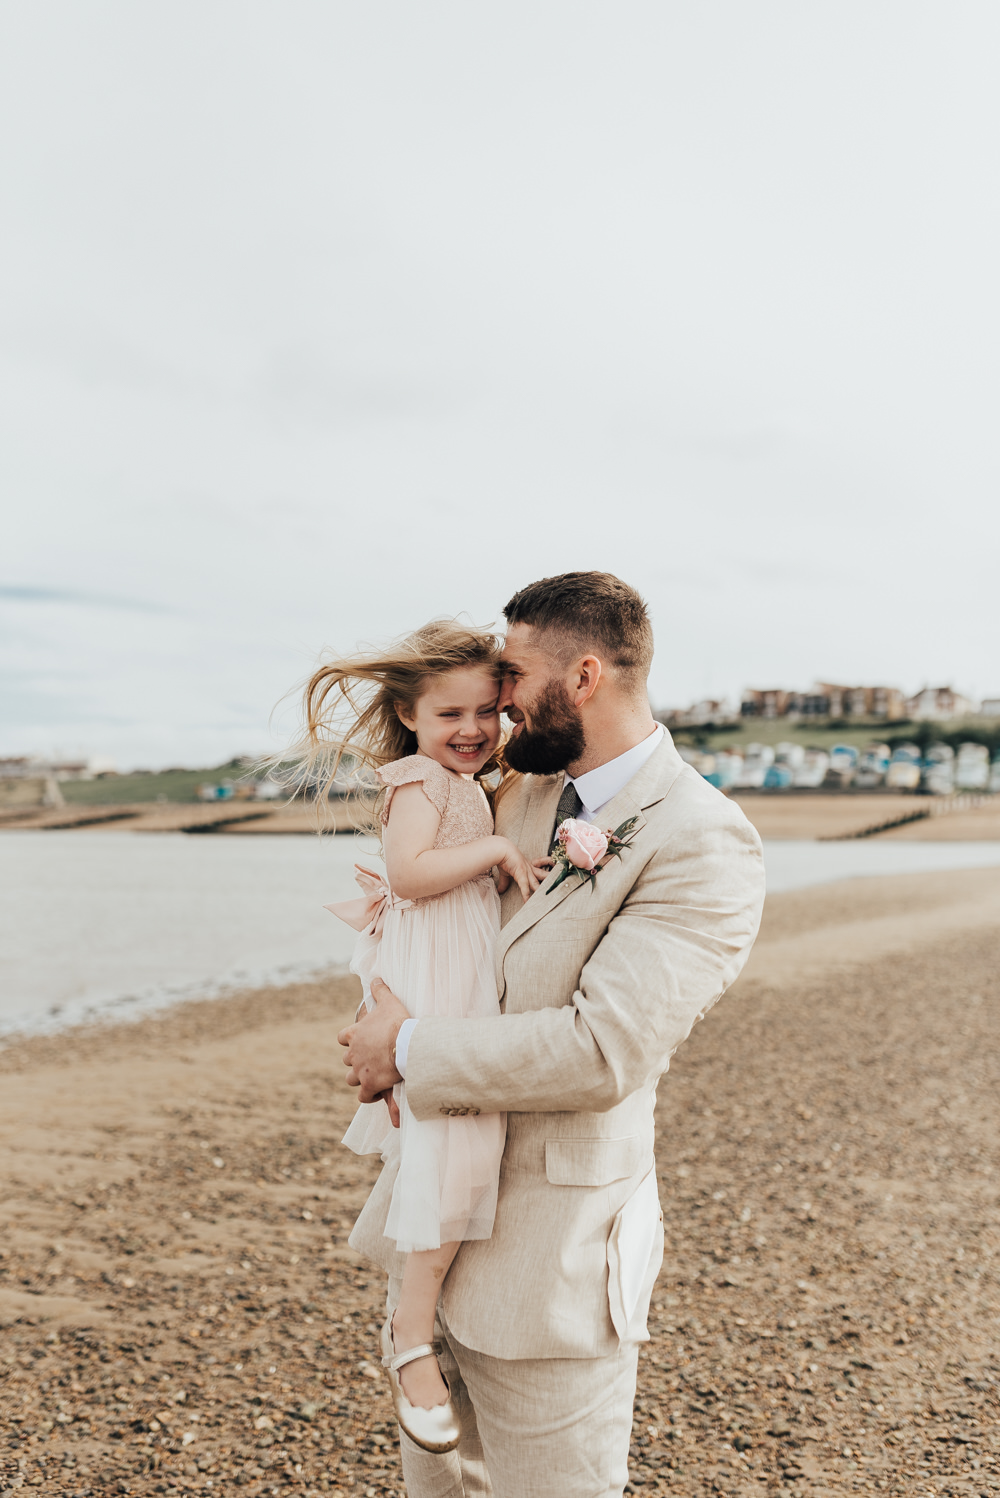 Groom Suit Pale Sand Linen Tweed Tie Pink Rose Buttonhole Loafers Flower Girl Flower Crown Floral Rose Halo Pink Dress Beacon House Wedding Elopement Rebecca Carpenter Photography